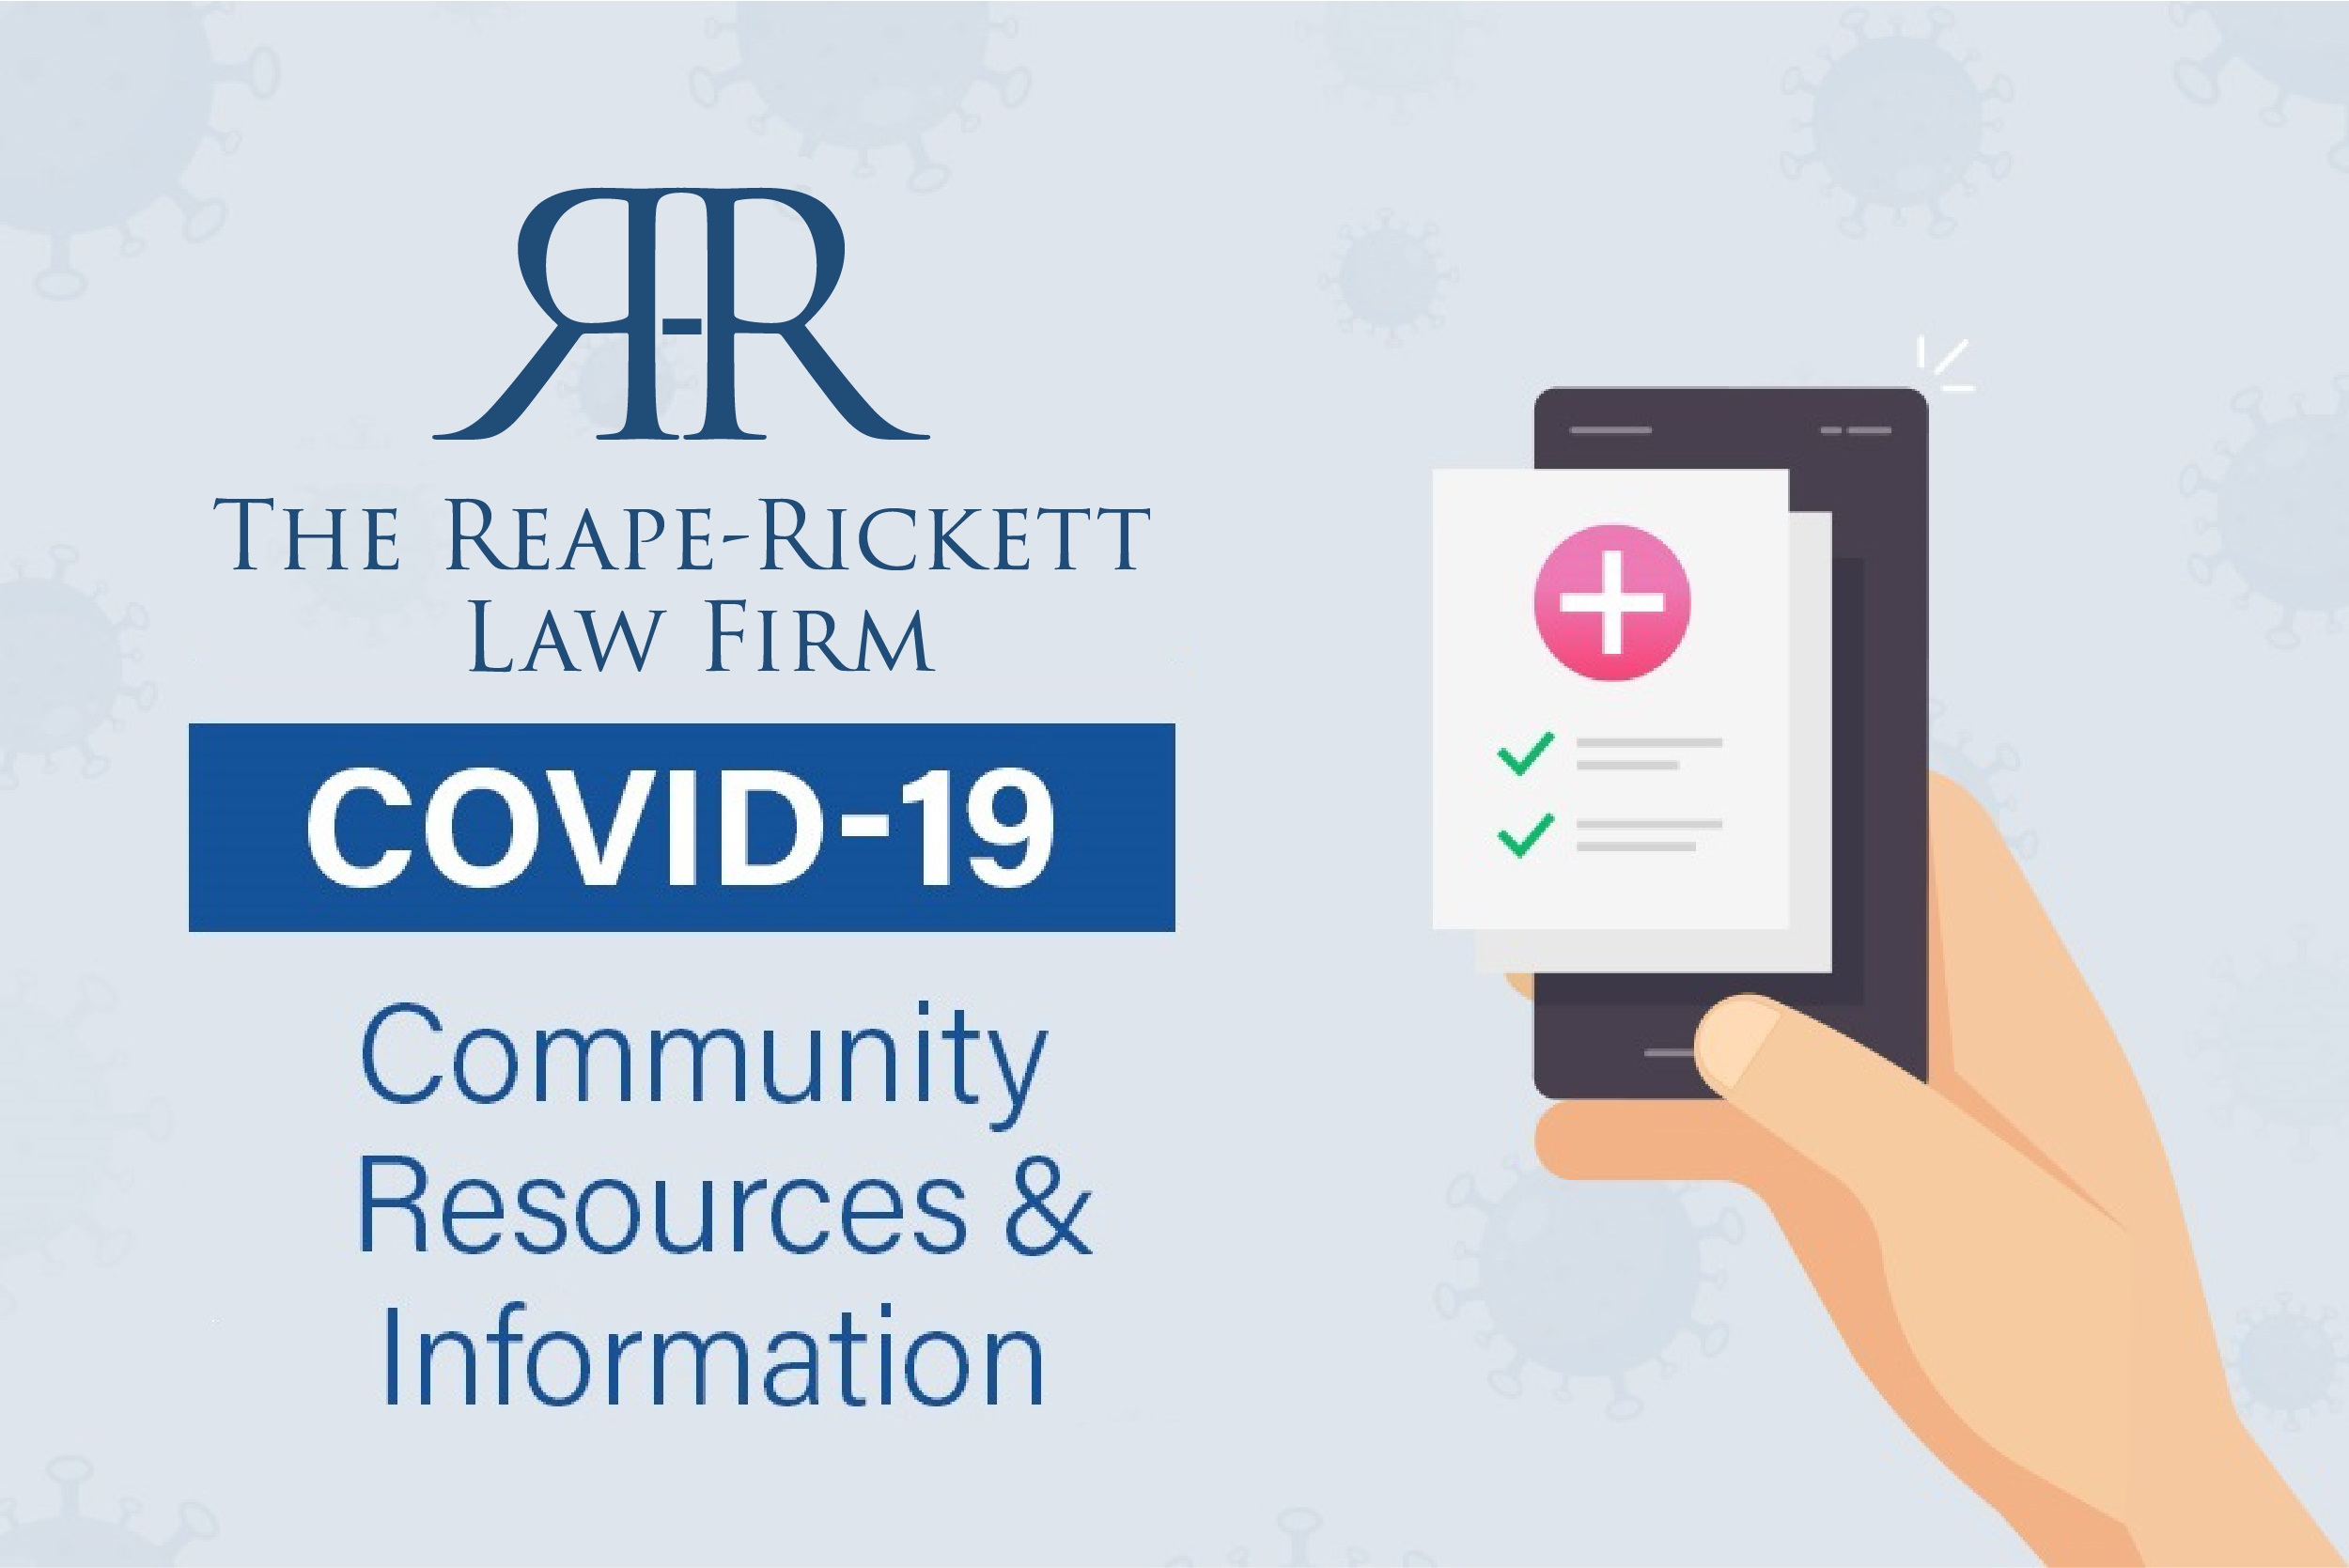 COVID-19 Community Resources & Information